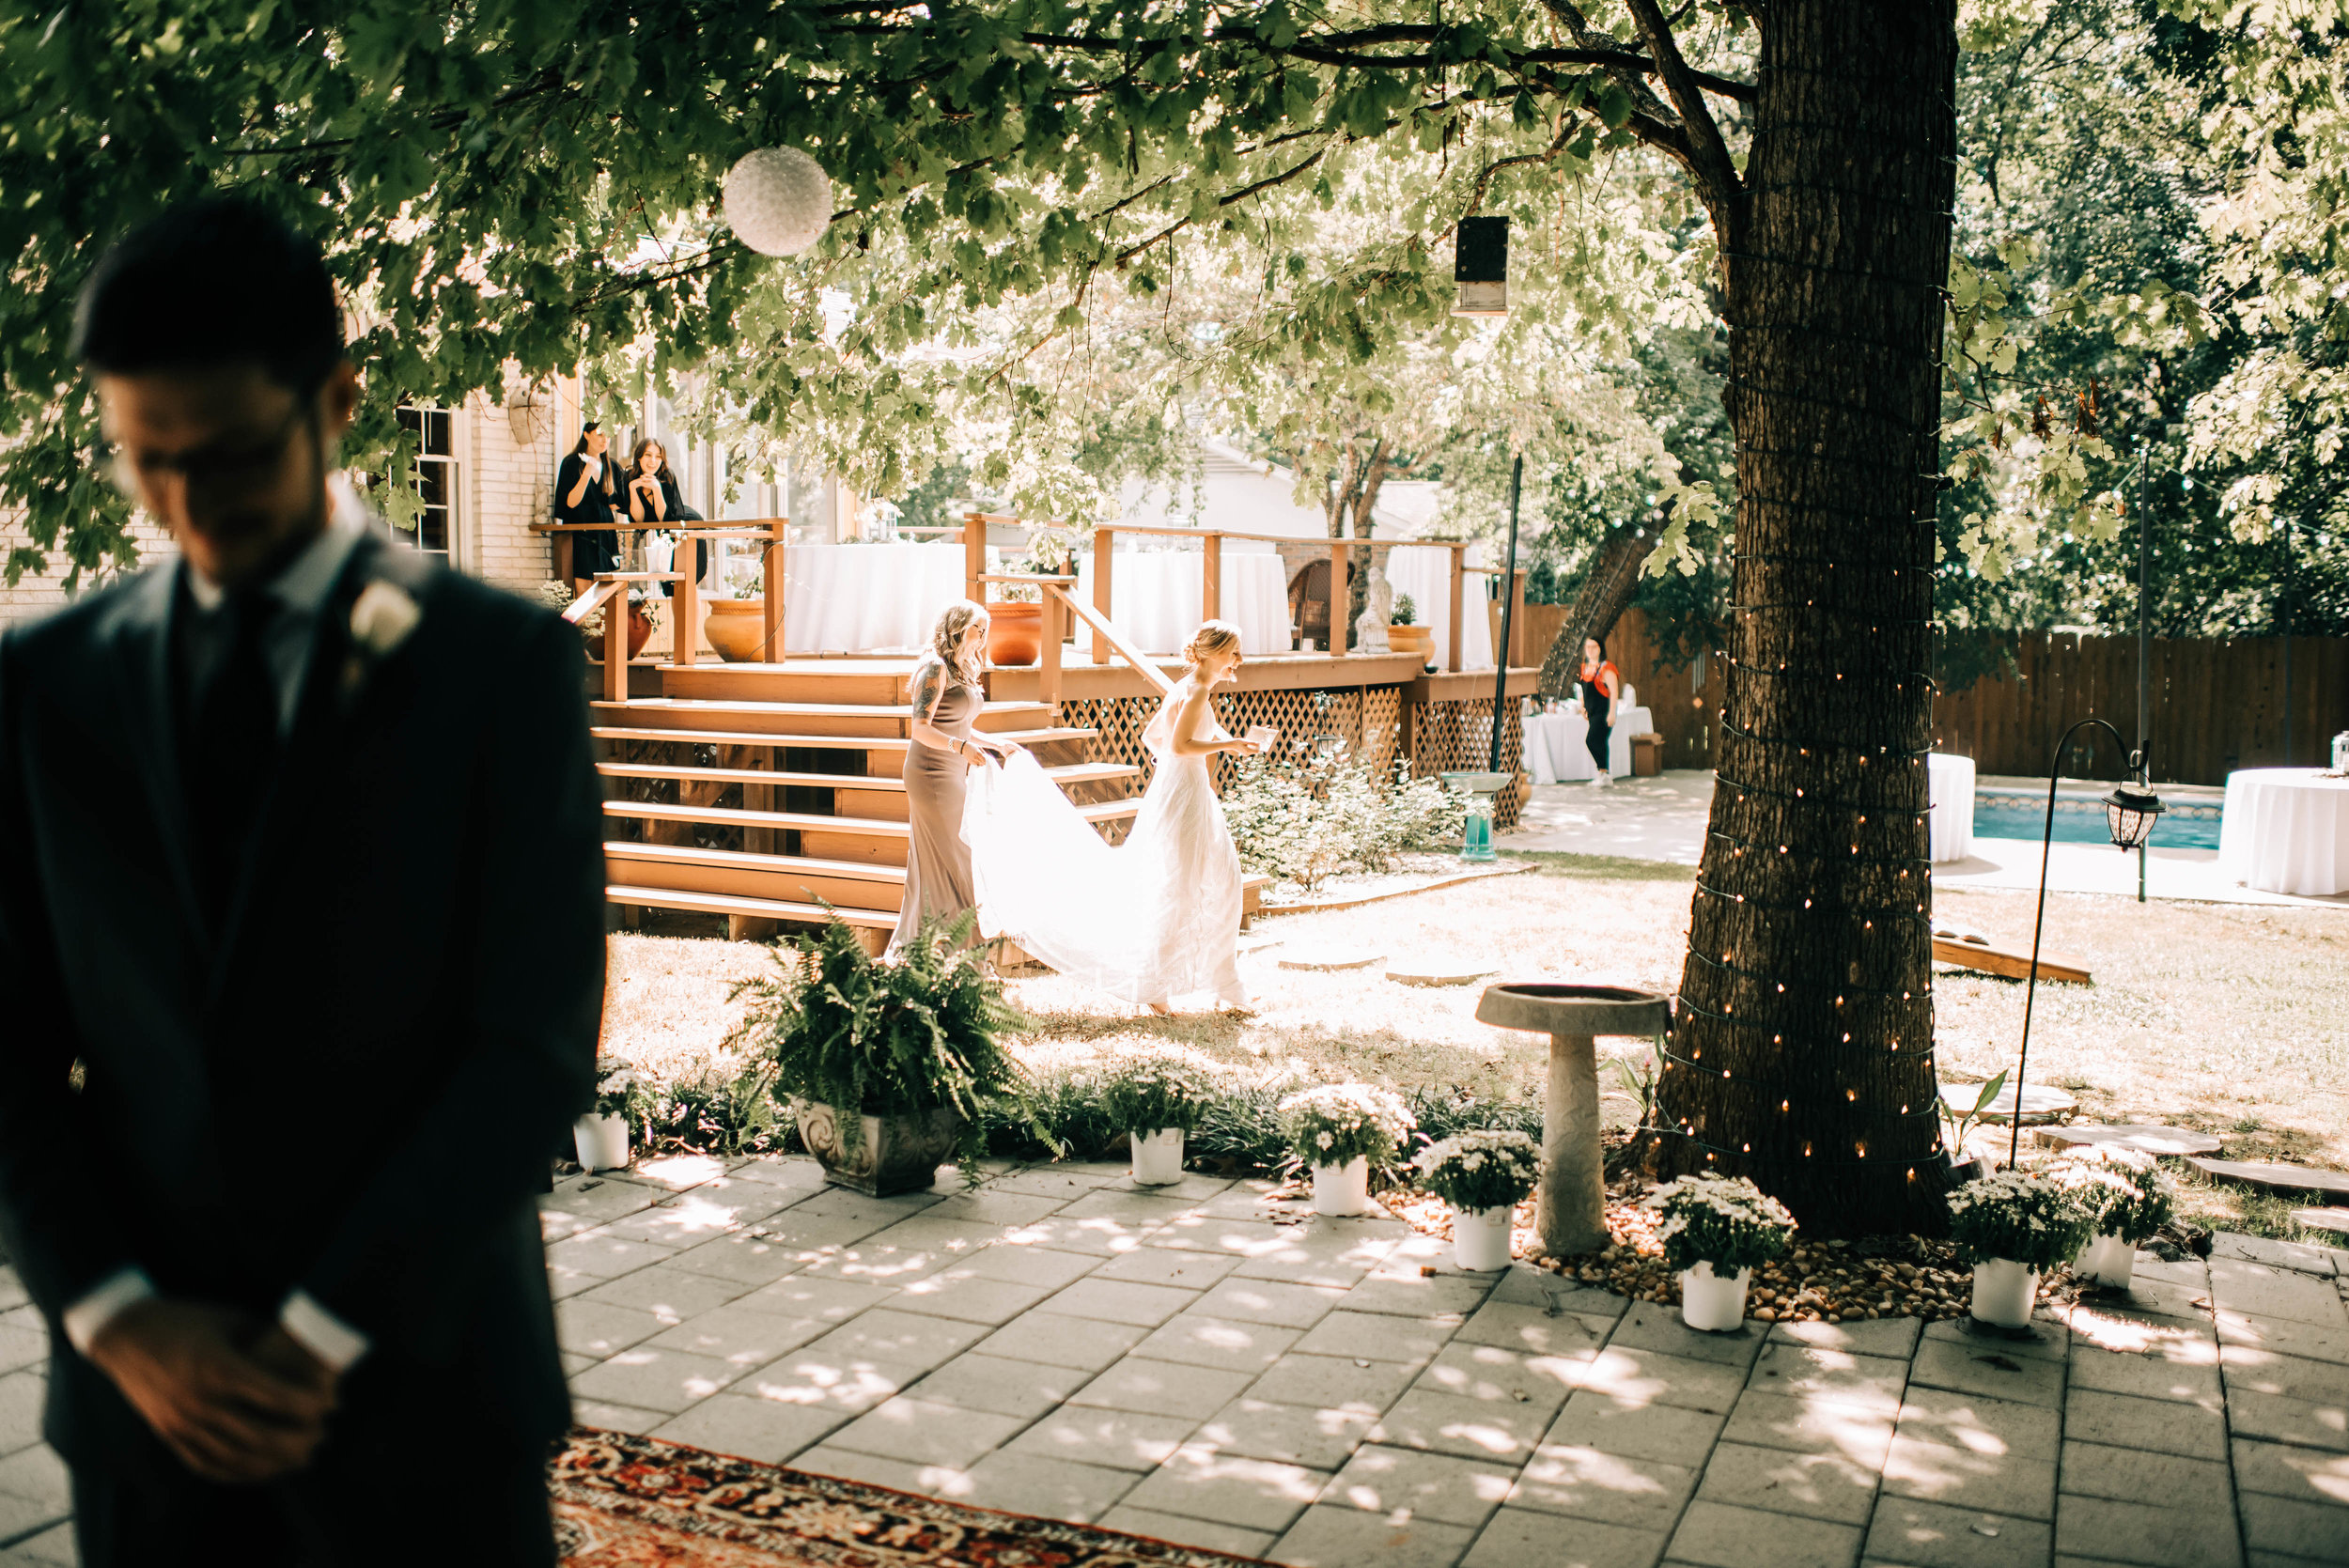 atlanta backyard wedding bay area oakland san francisco engagement wedding nontraditional fun creative eclectic photographer magic-117.jpg